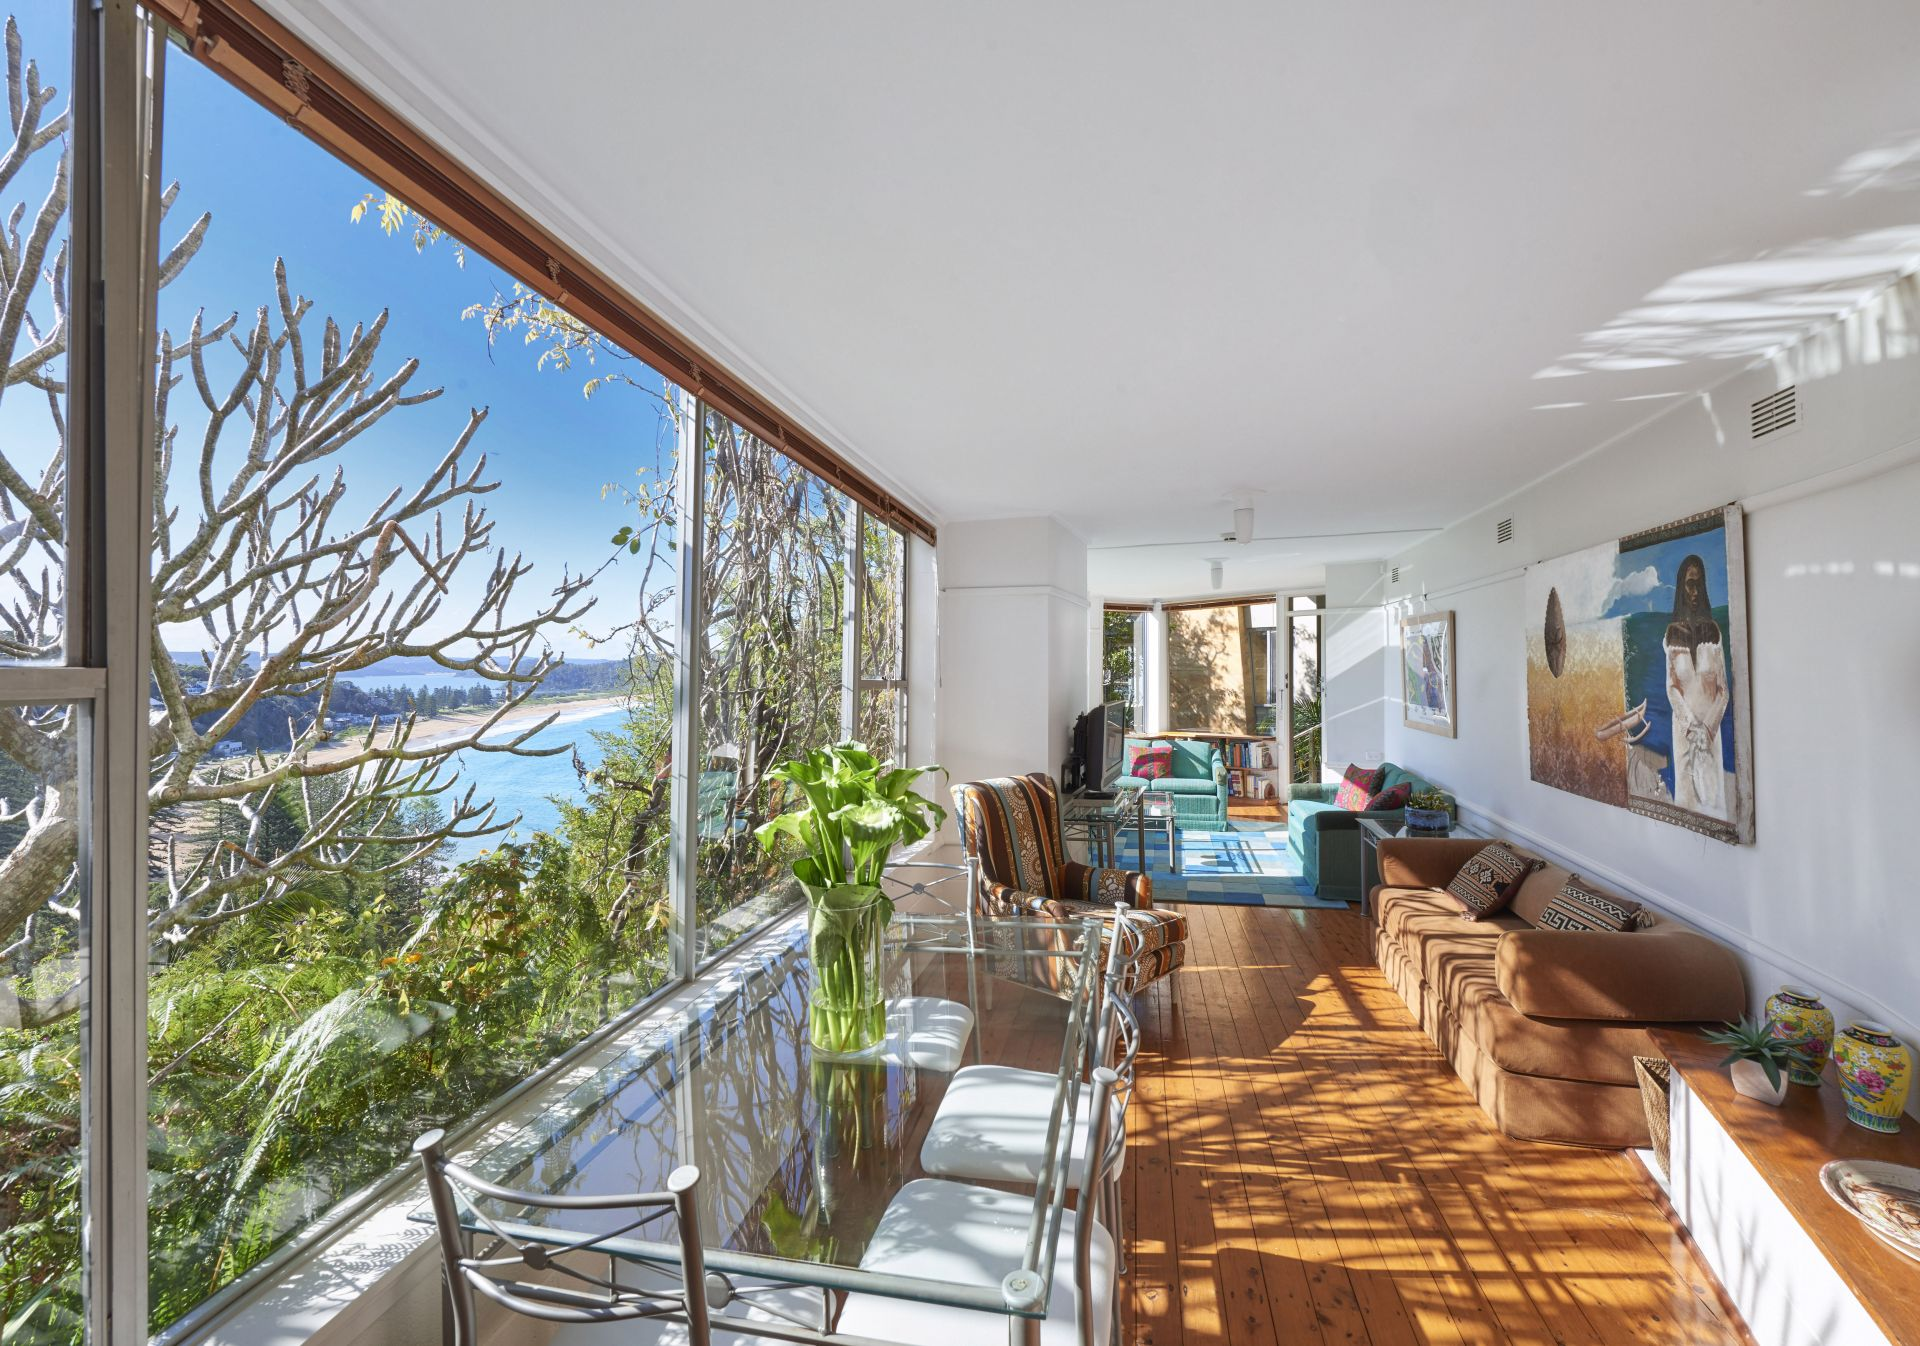 Additional photo for property listing at Classic '60's beach house, incredible northerly views 6 Mitchell Road Palm Beach, 新南威尔士,2108 澳大利亚